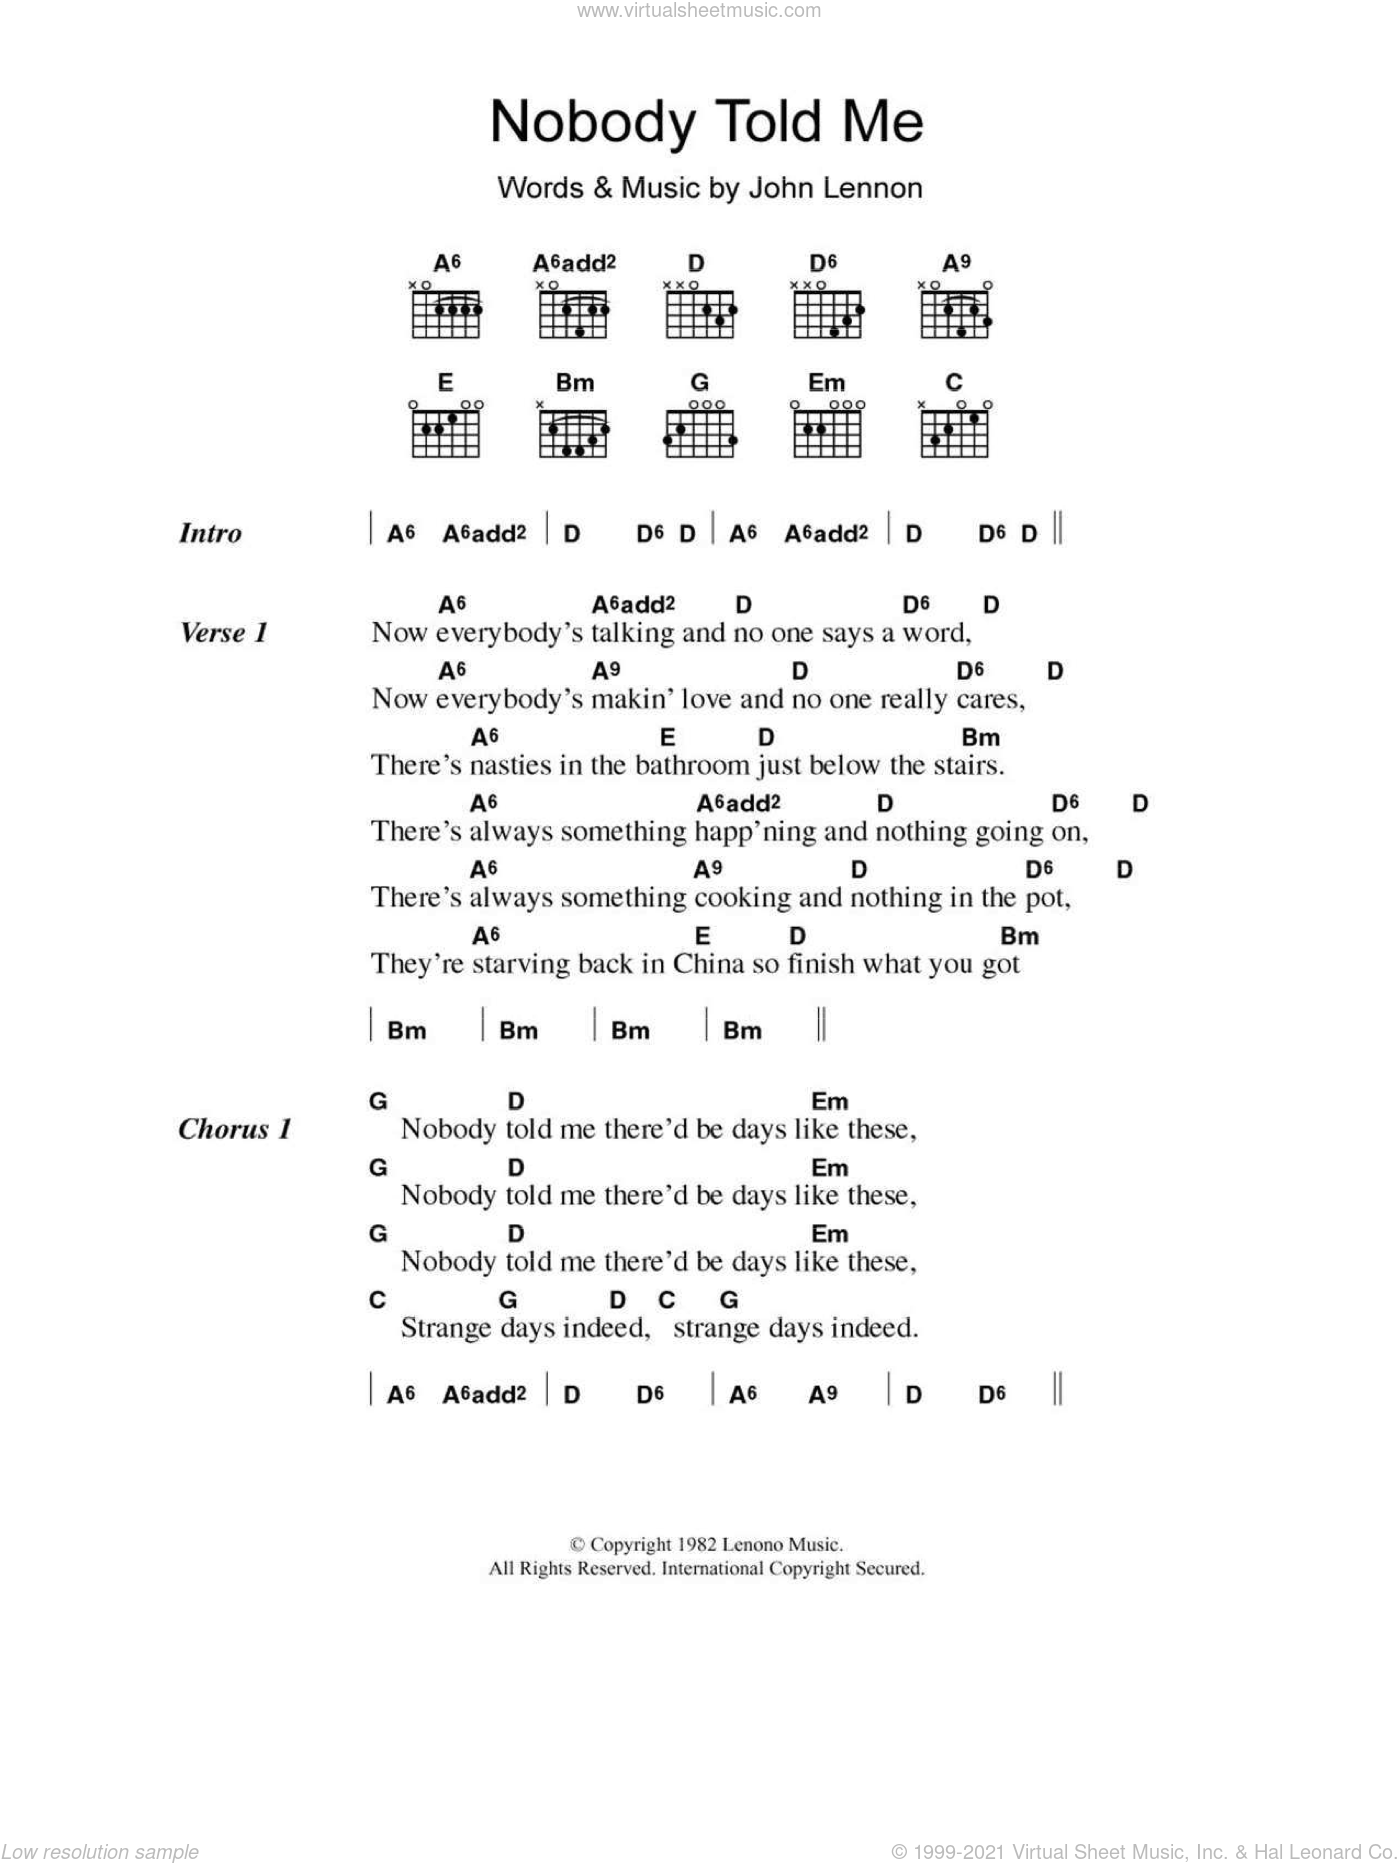 Nobody Told Me sheet music for guitar (chords) by John Lennon. Score Image Preview.